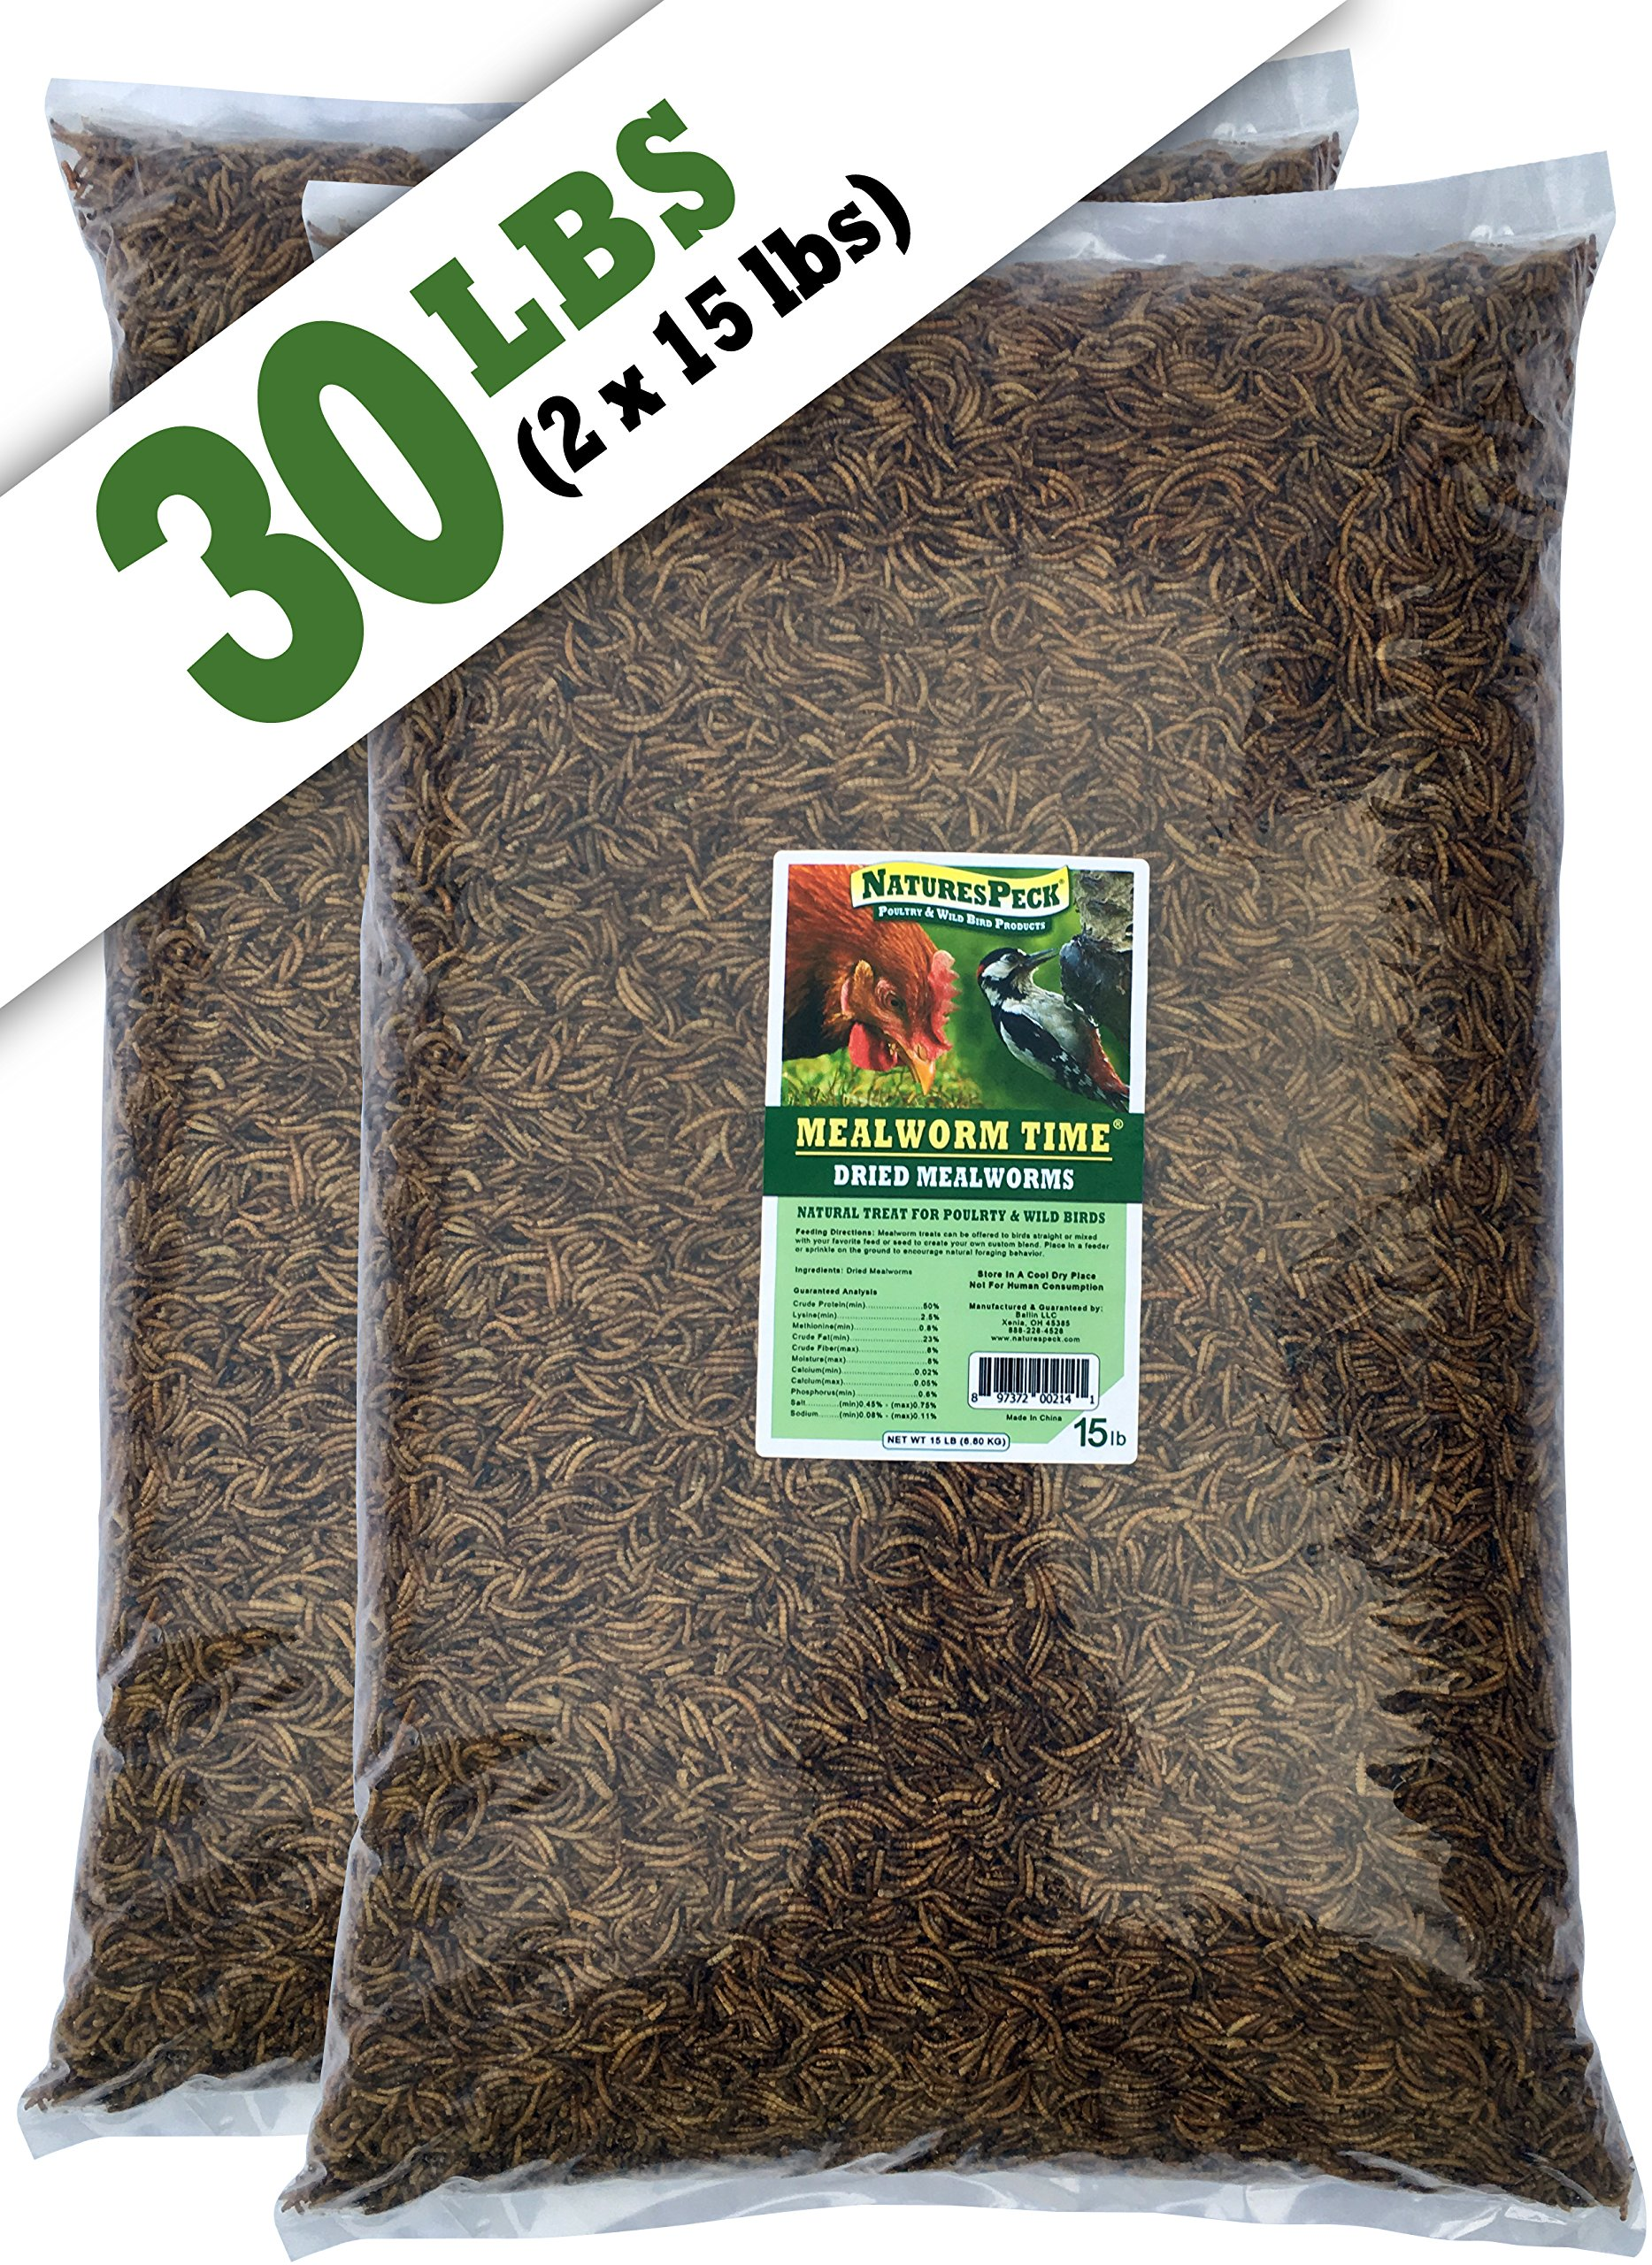 NaturesPeck Mealworm Time Dried Mealworms (30 lb)